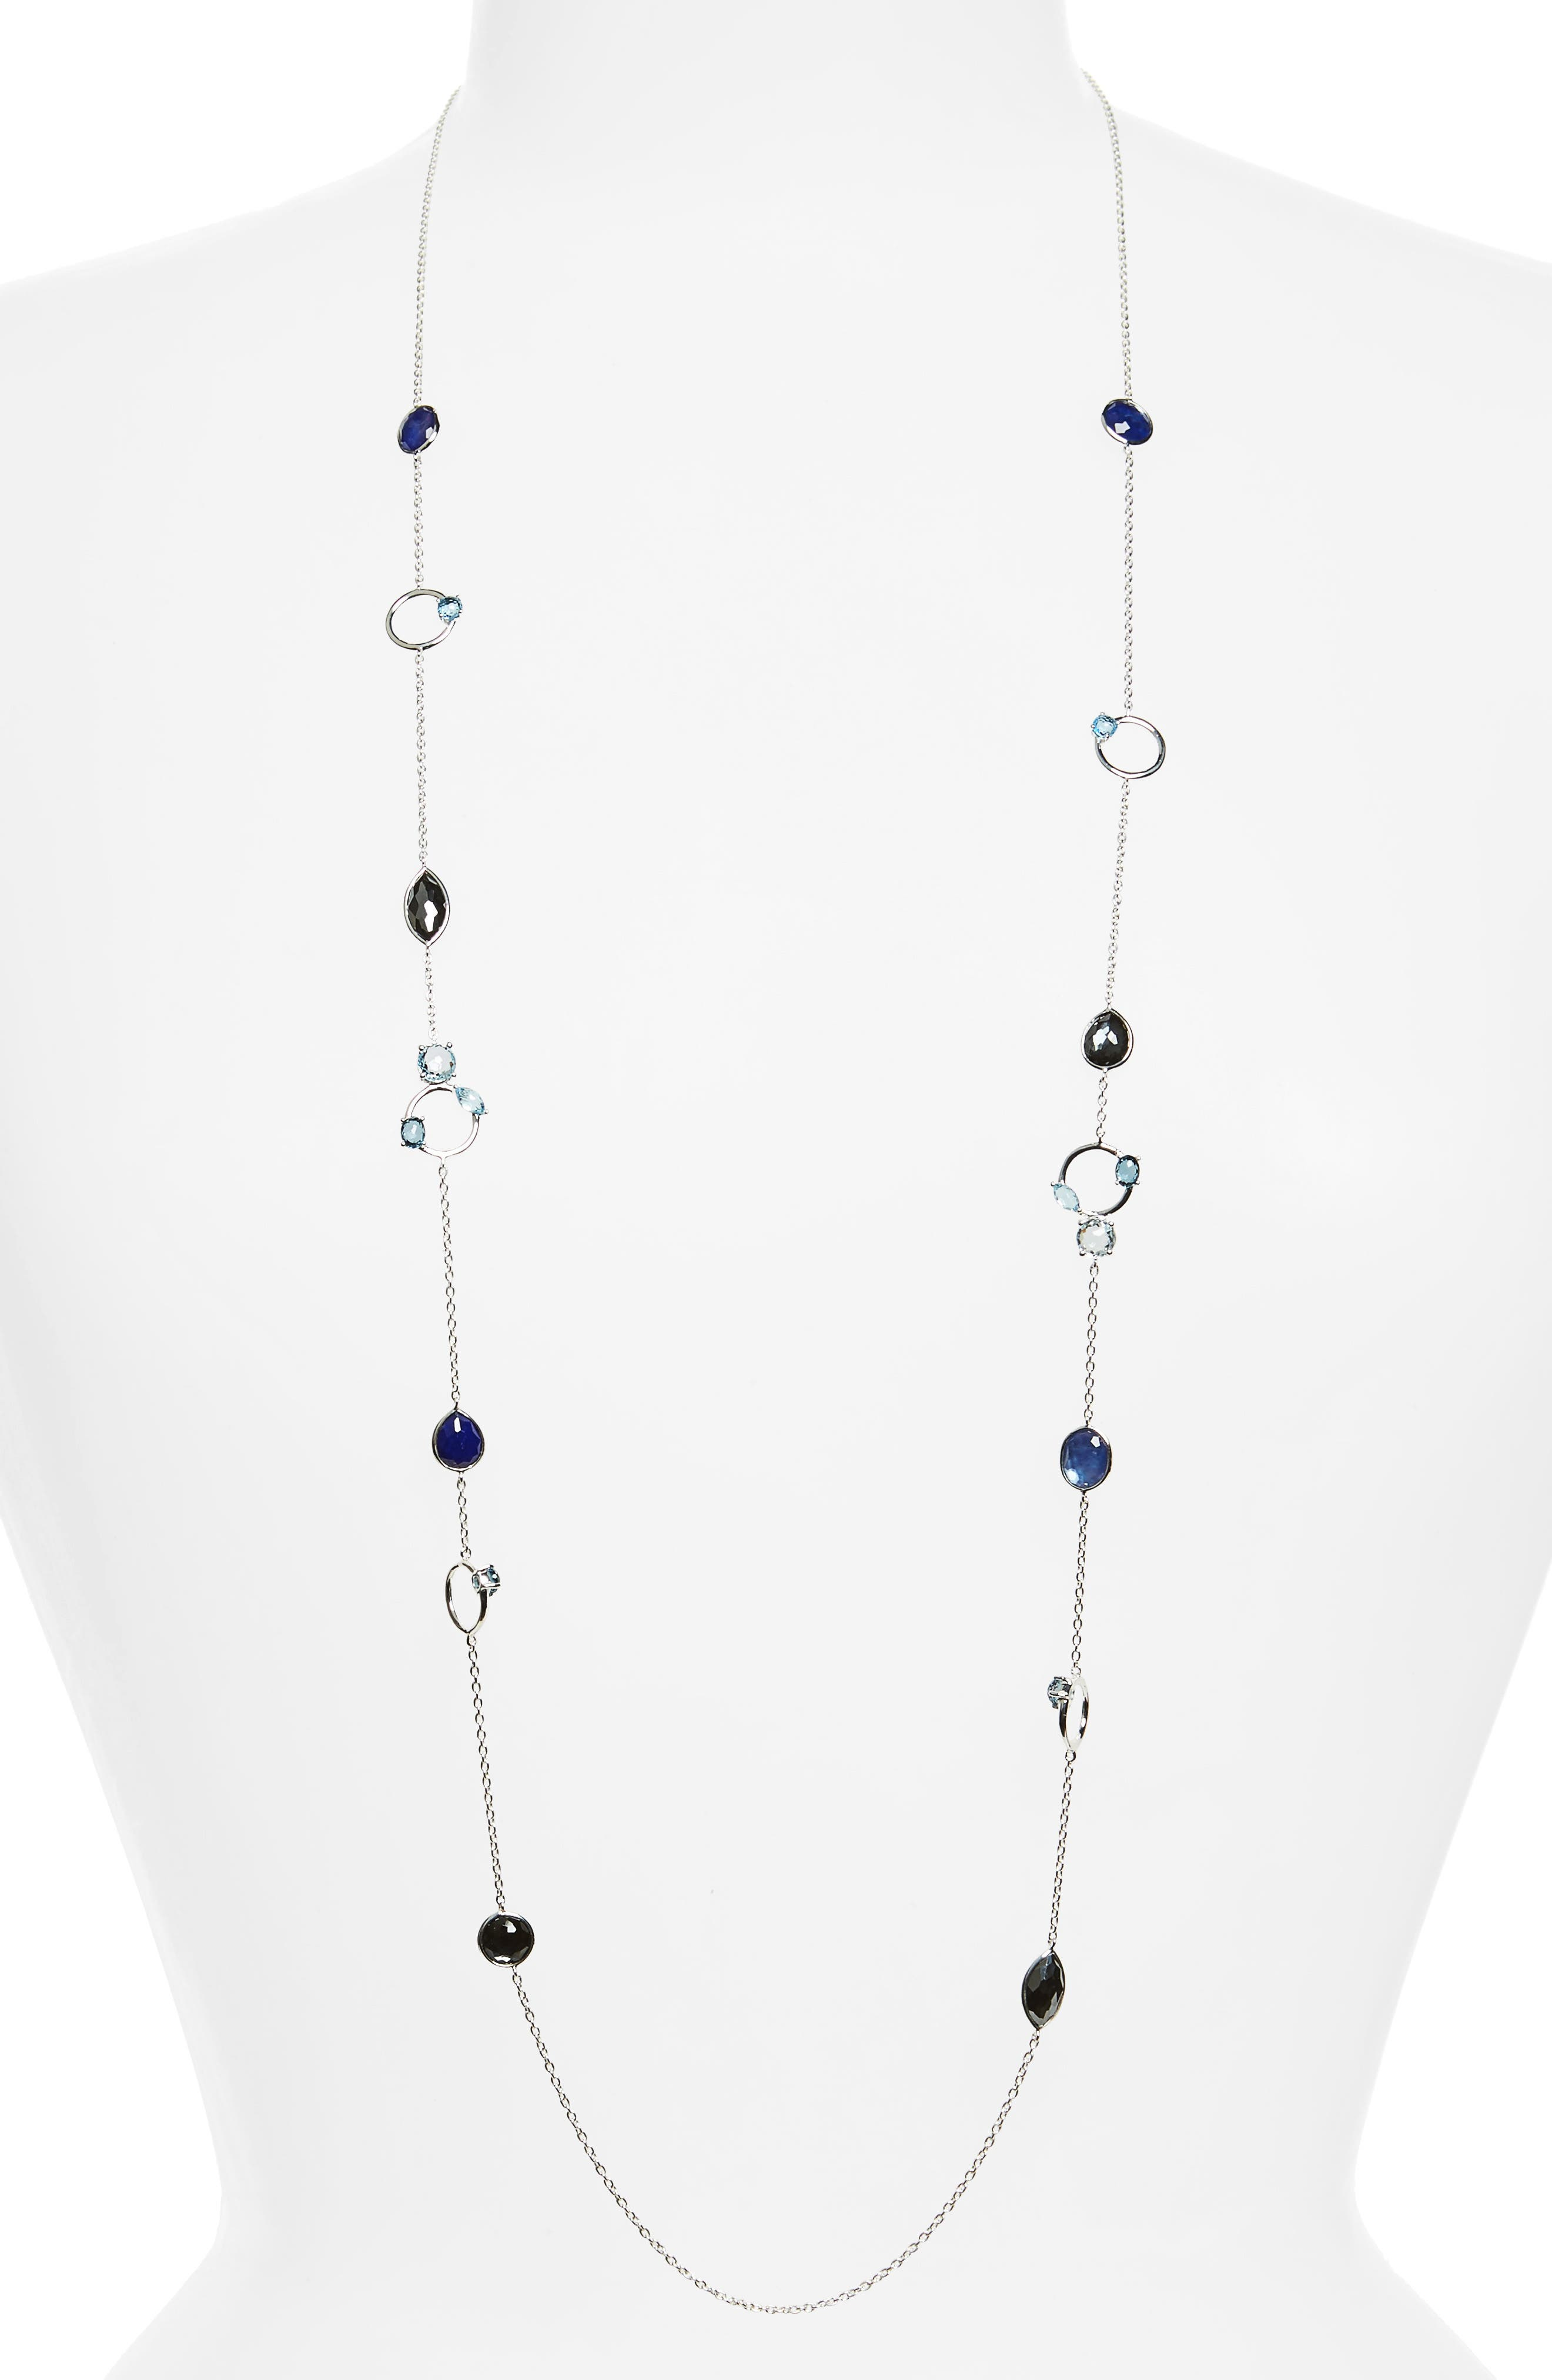 Rock Candy Strand Necklace,                             Main thumbnail 1, color,                             400